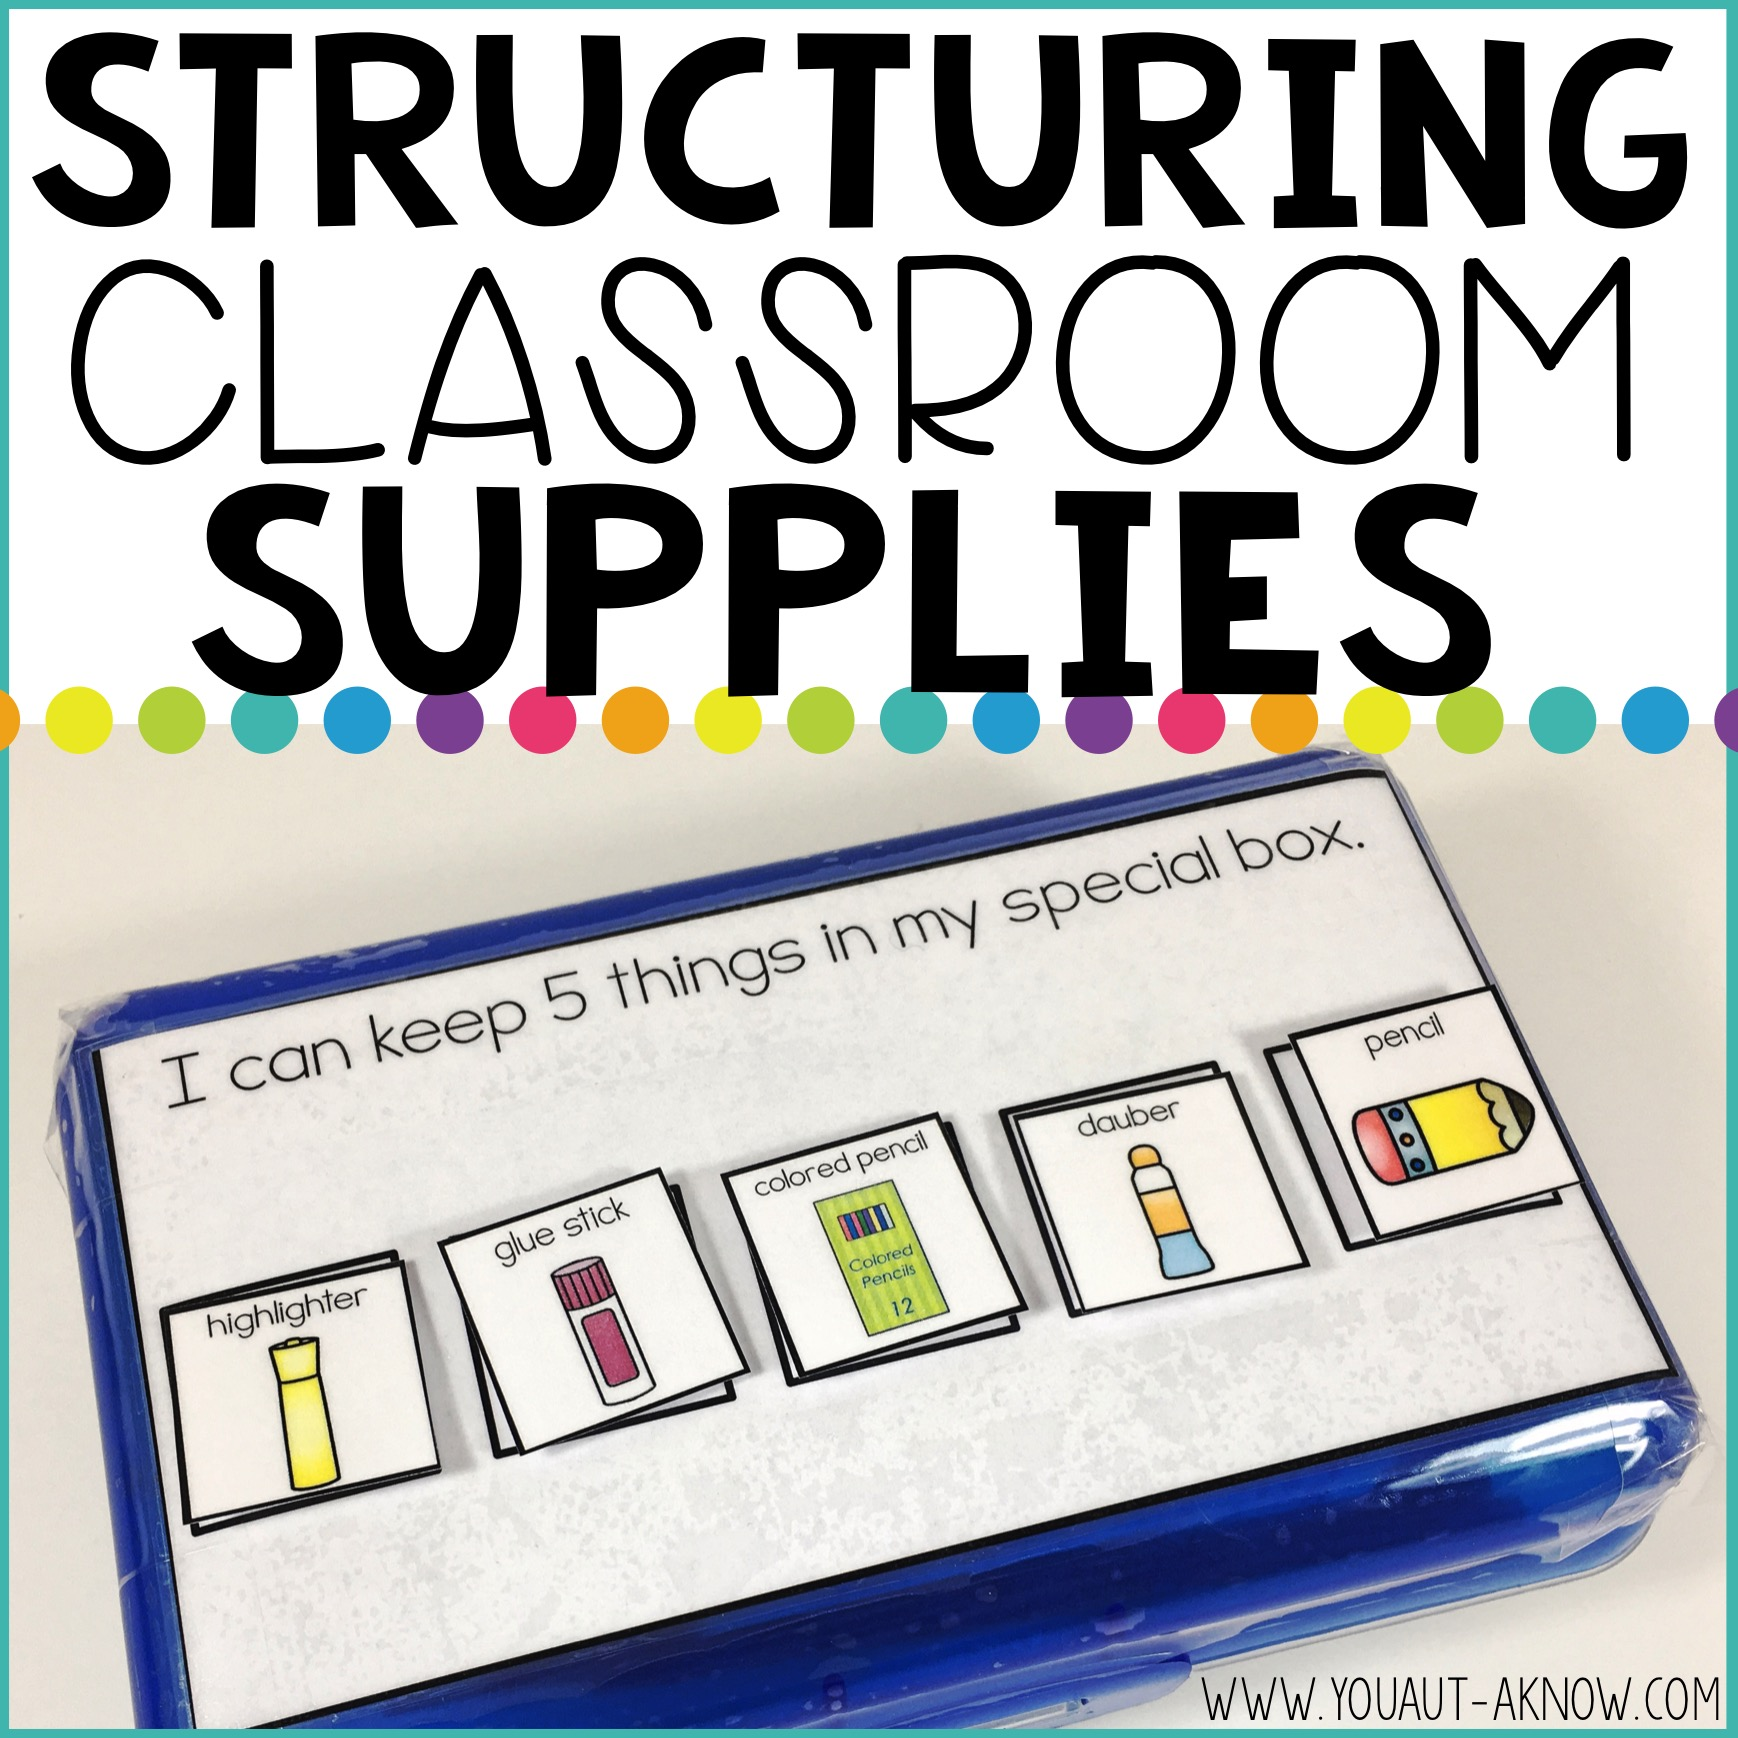 How to Give Your Classroom Supplies (Like Pencil Boxes) Some Structure